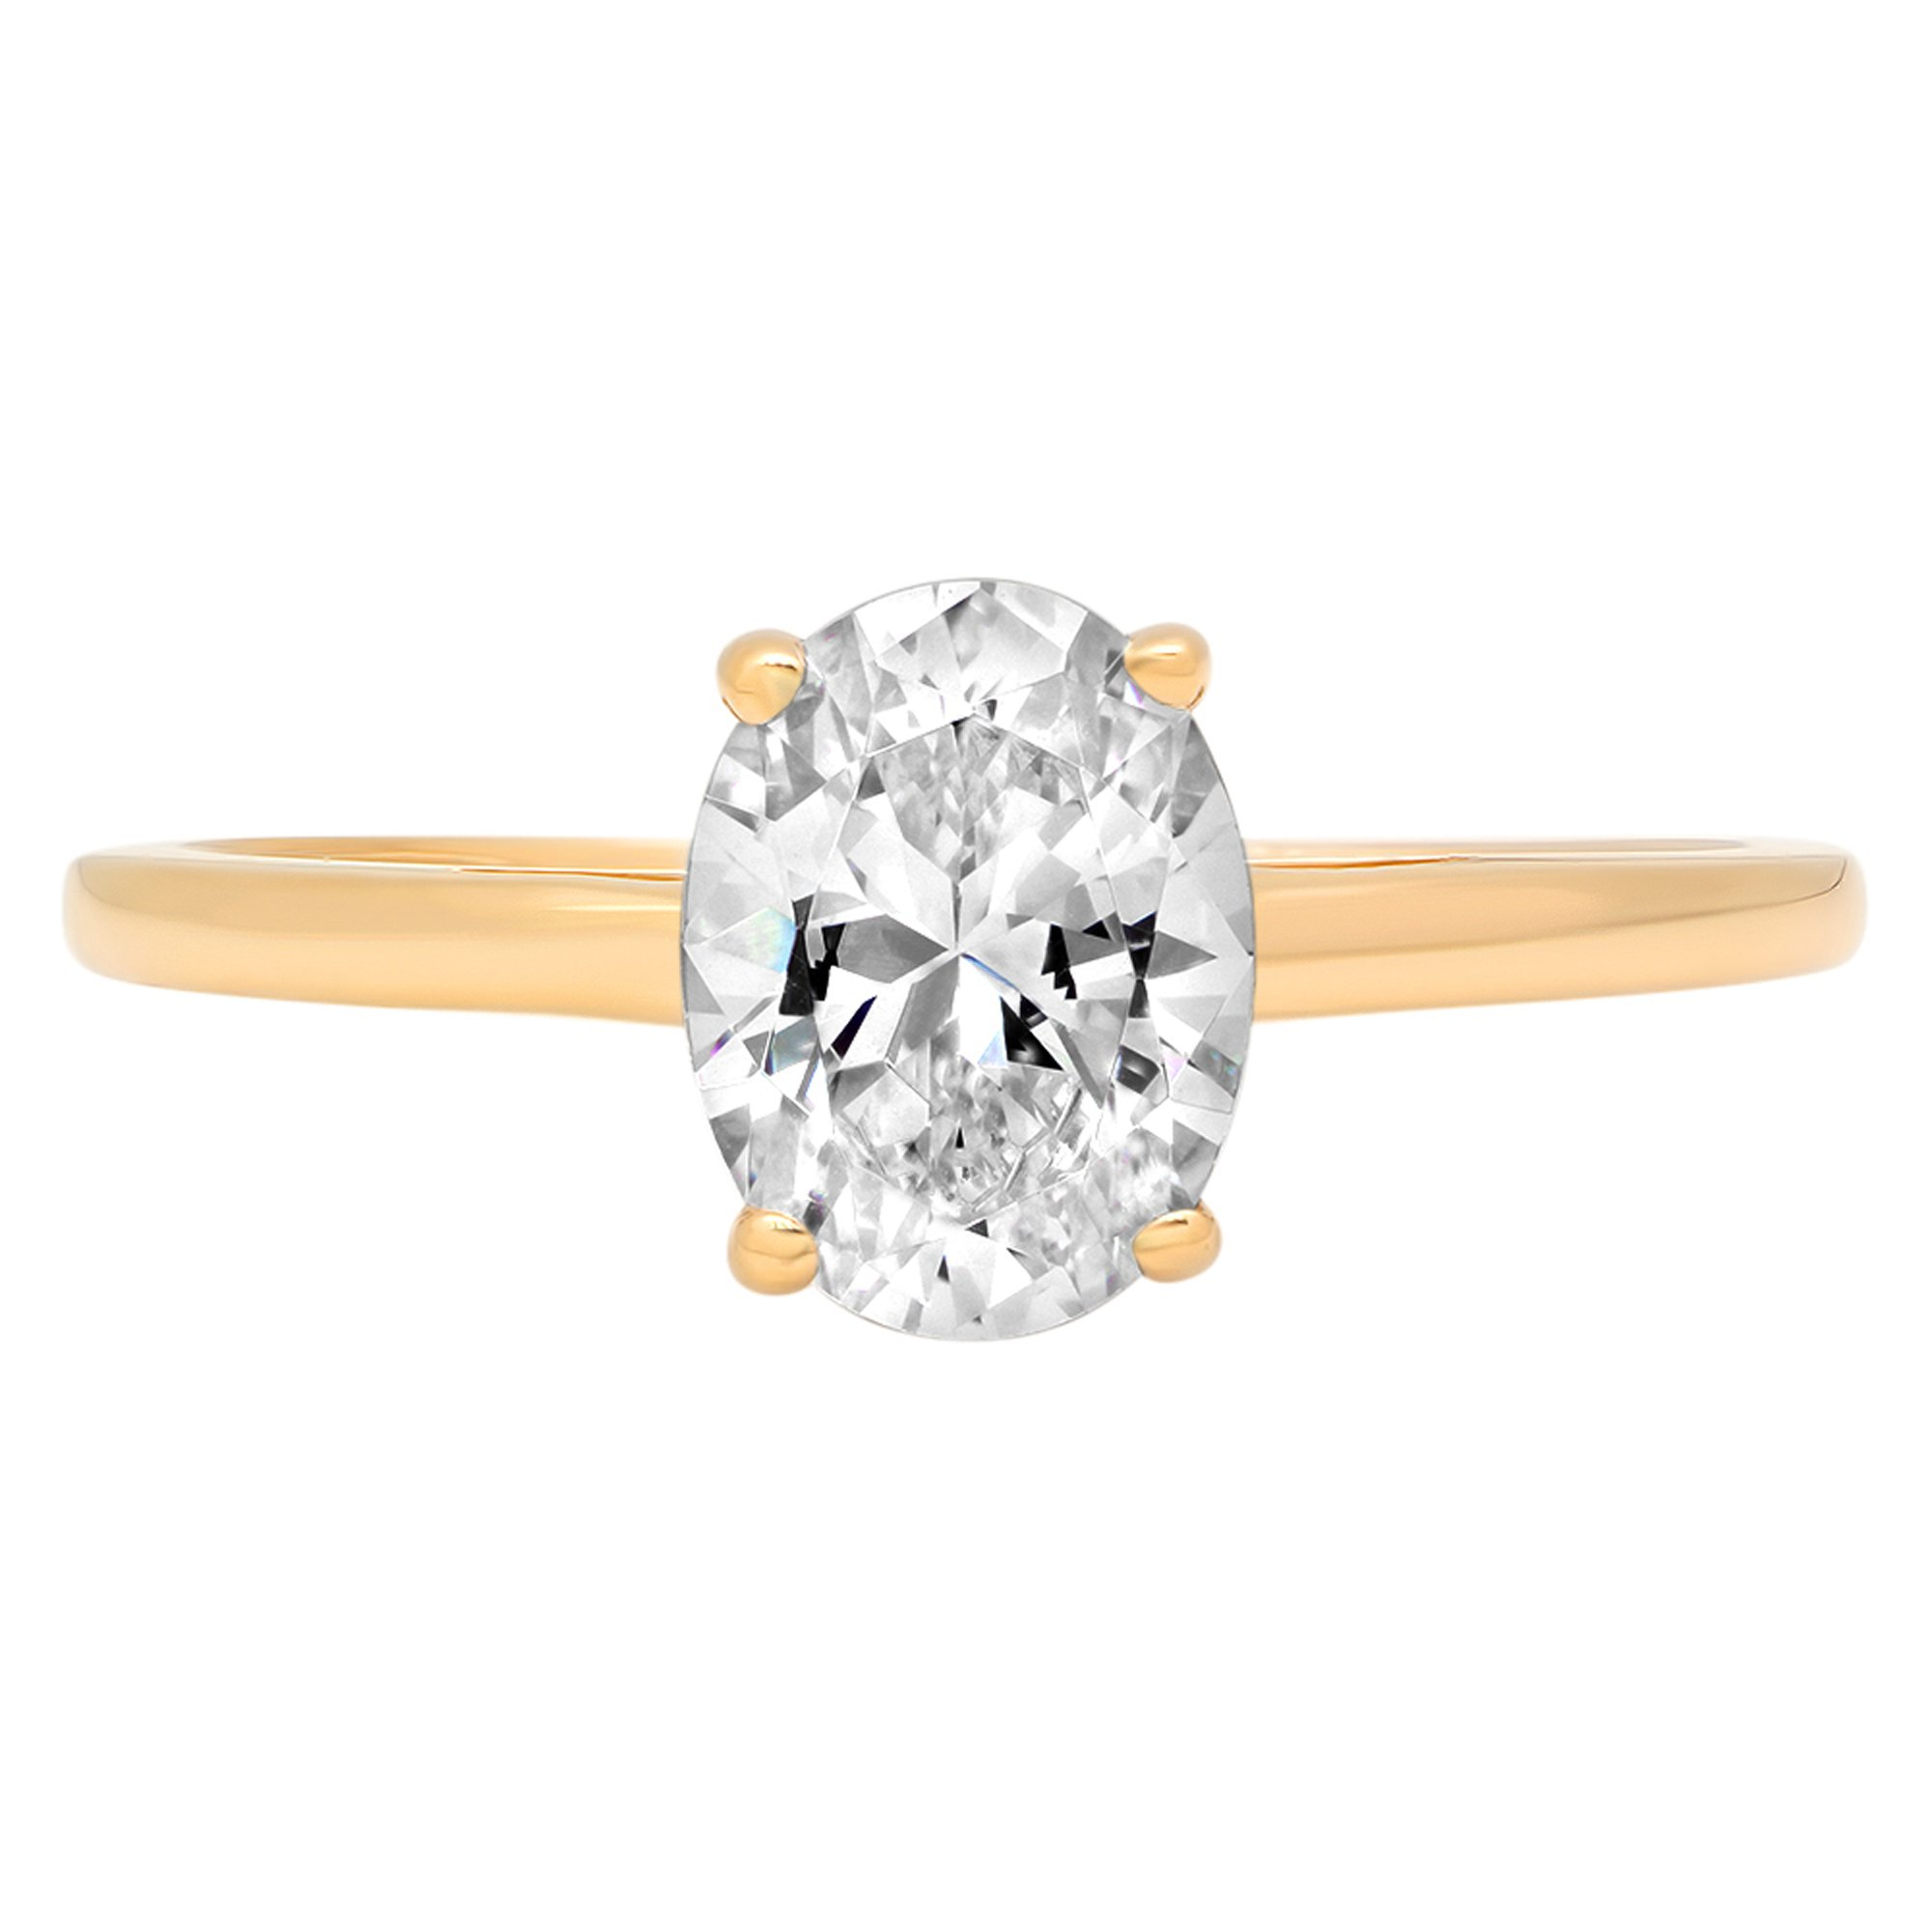 Clara Pucci 1.45 ct Brilliant Oval Cut Solitaire Engagement weddind Bridal Promise Ring Band in Solid 14k Yellow Gold, Size 9